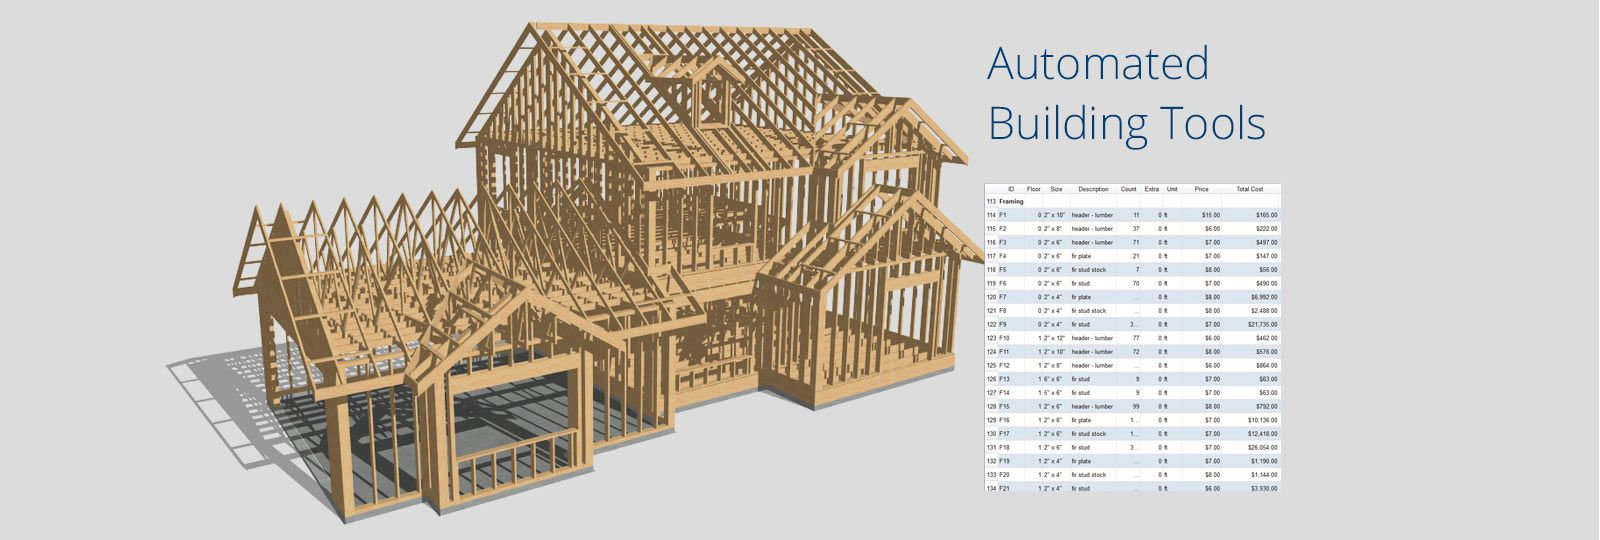 Superieur The Chief Architect Home Construction And Design Software Built Starting  New Diy Project Can Daunting Avoid | Home Design Idea | Pinterest | Chief  Architect ...